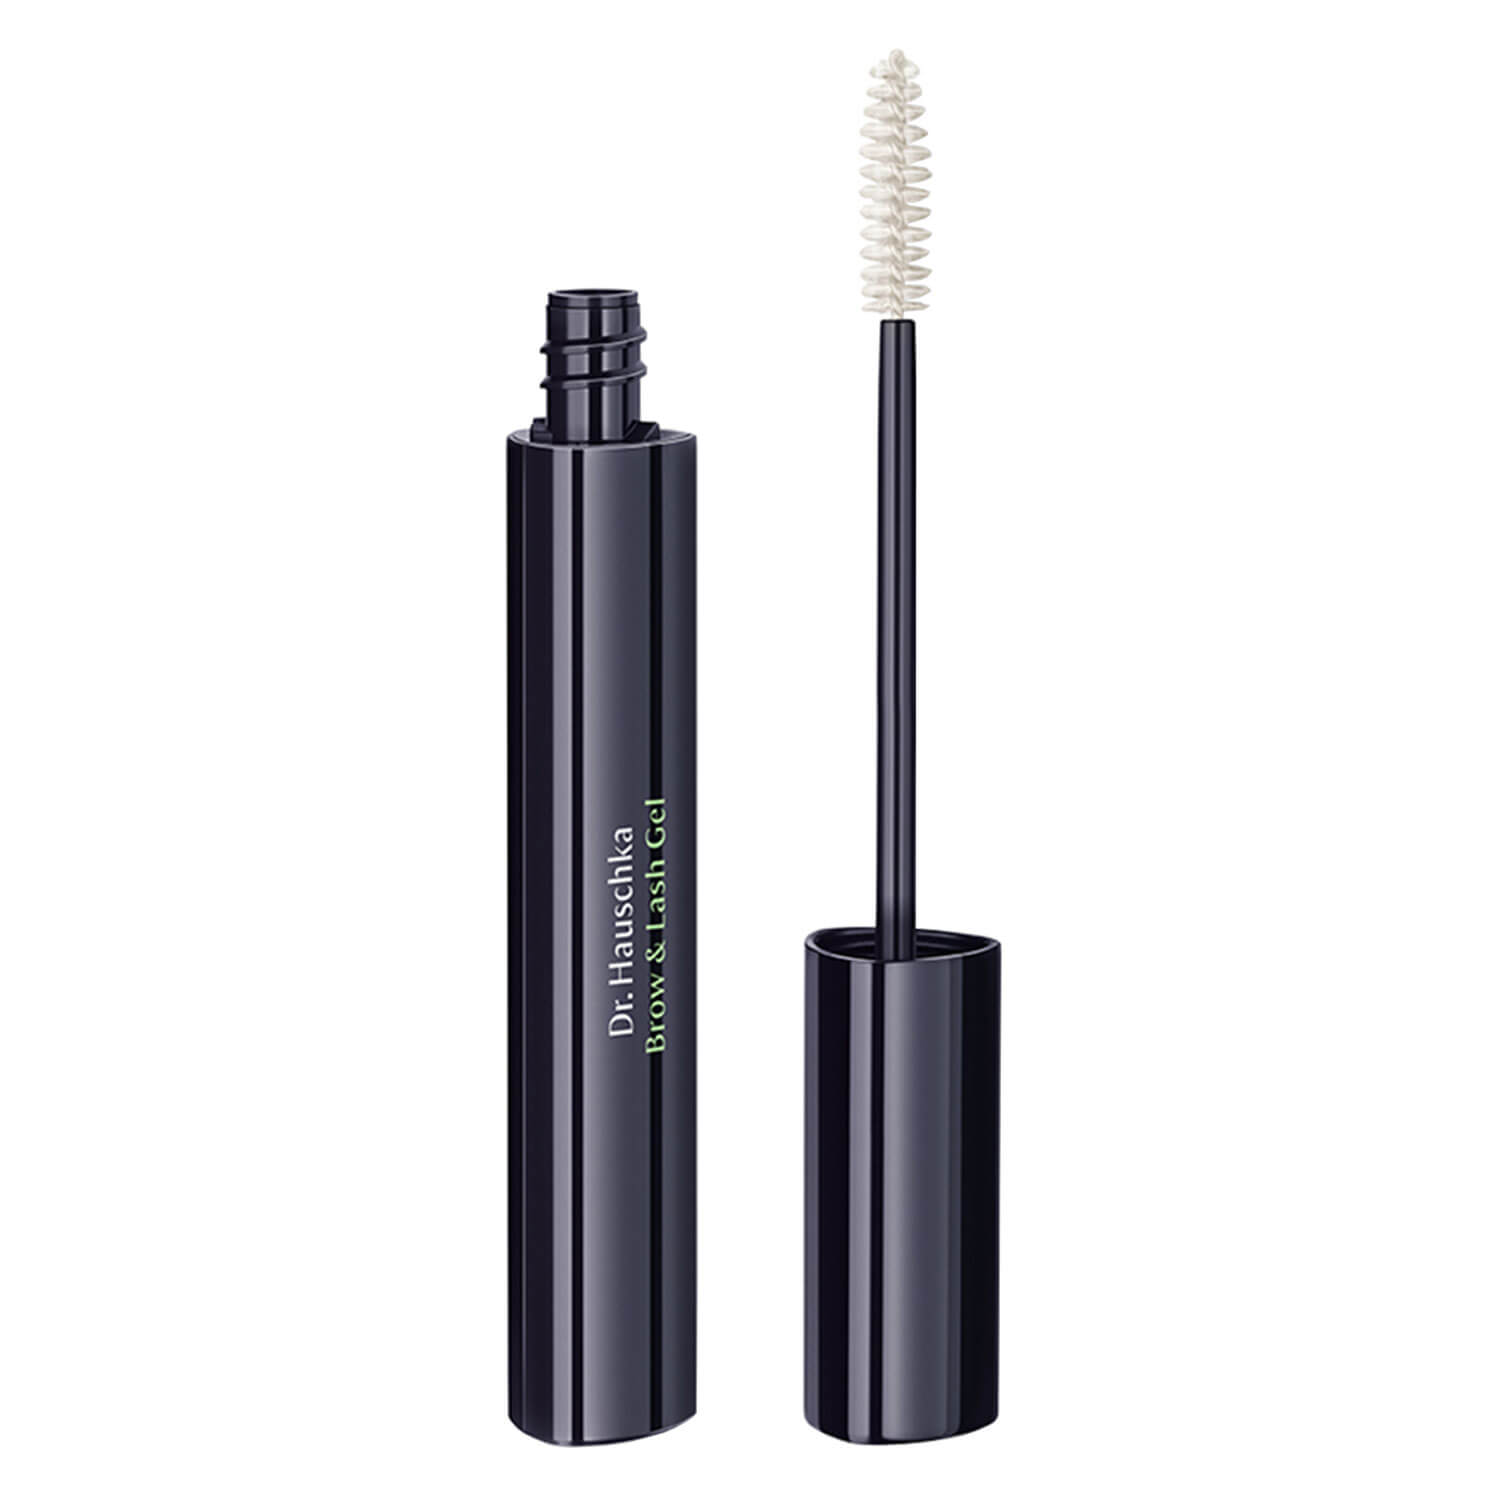 Dr. Hauschka Eyes - Brow & Lash Gel translucent 00